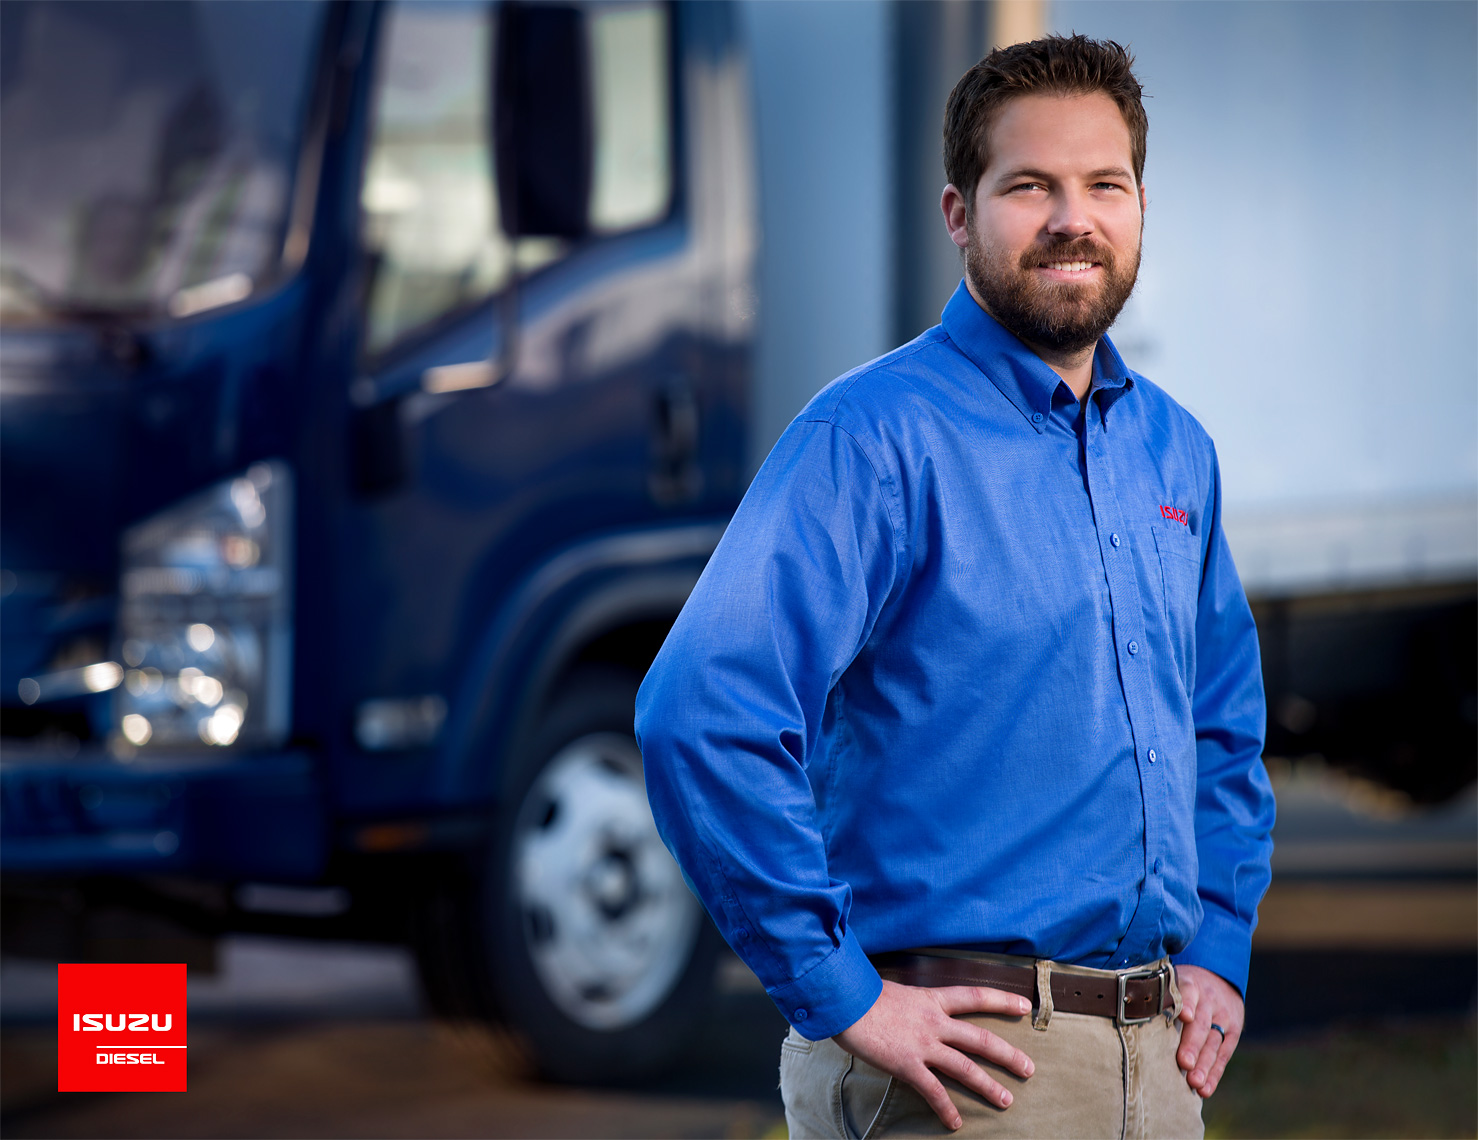 industrial-corporate-portrait-isuzu-detroit-commercial-photographer-scott-stewart